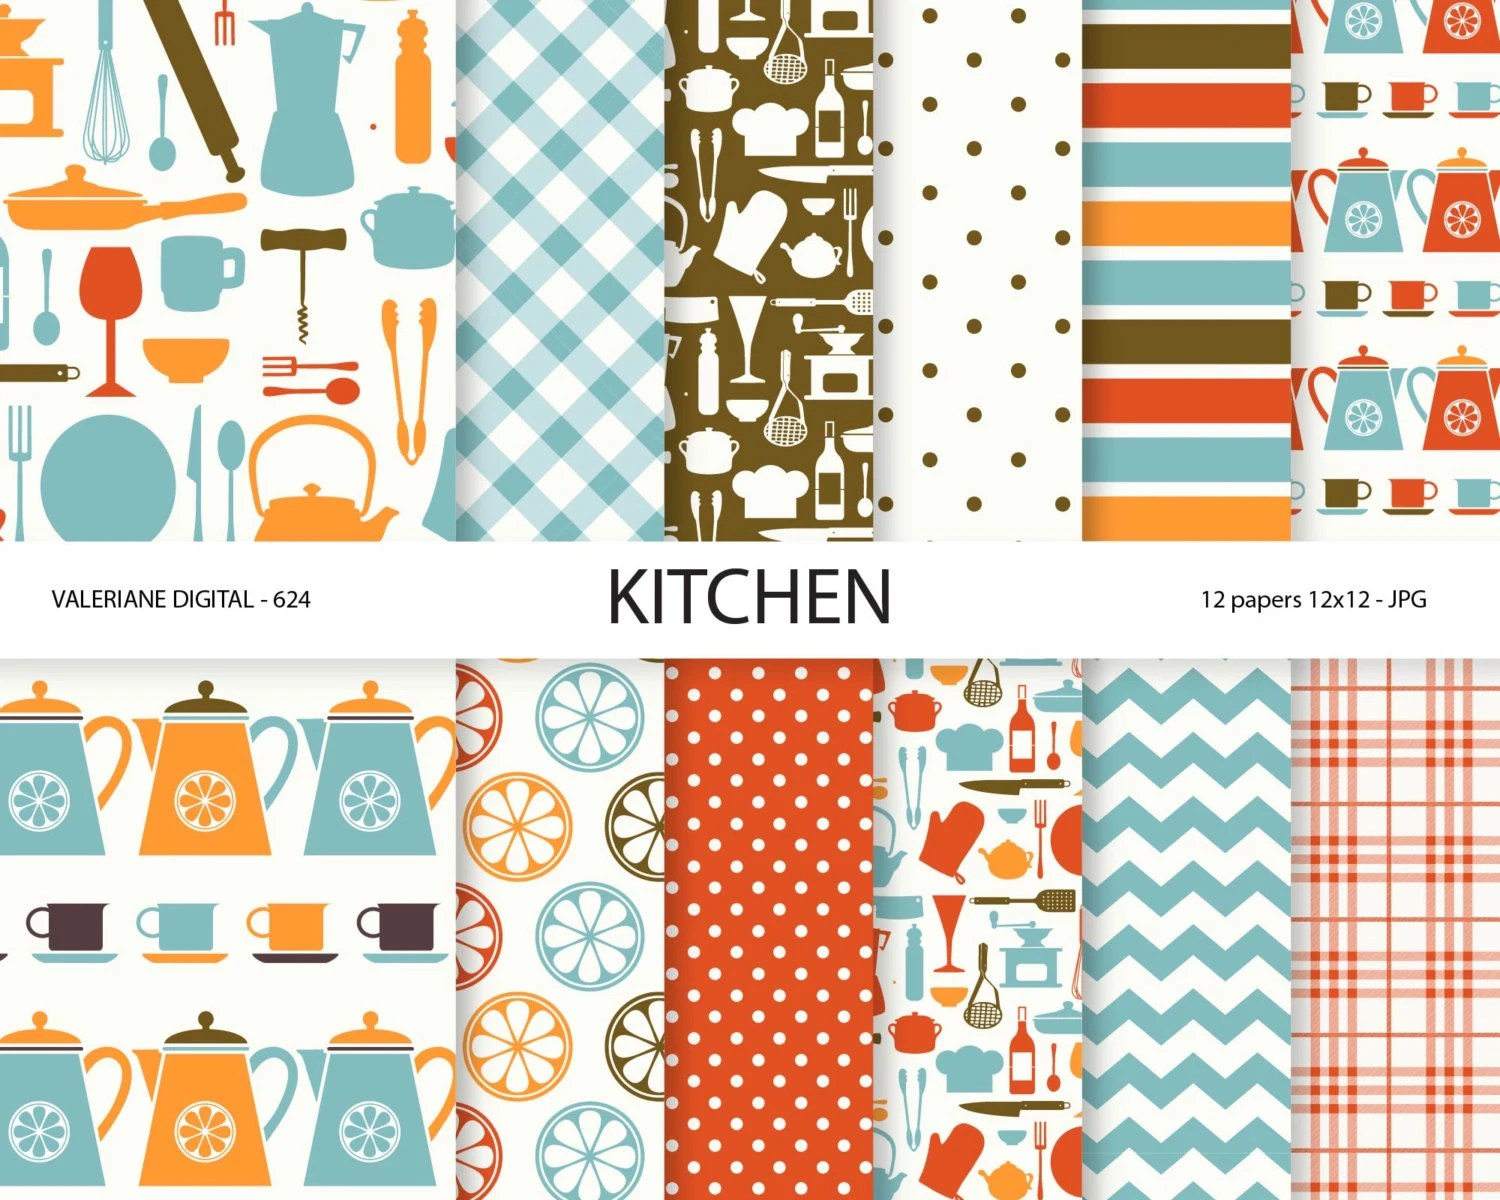 The Kitchen Paper Home Design Ideas